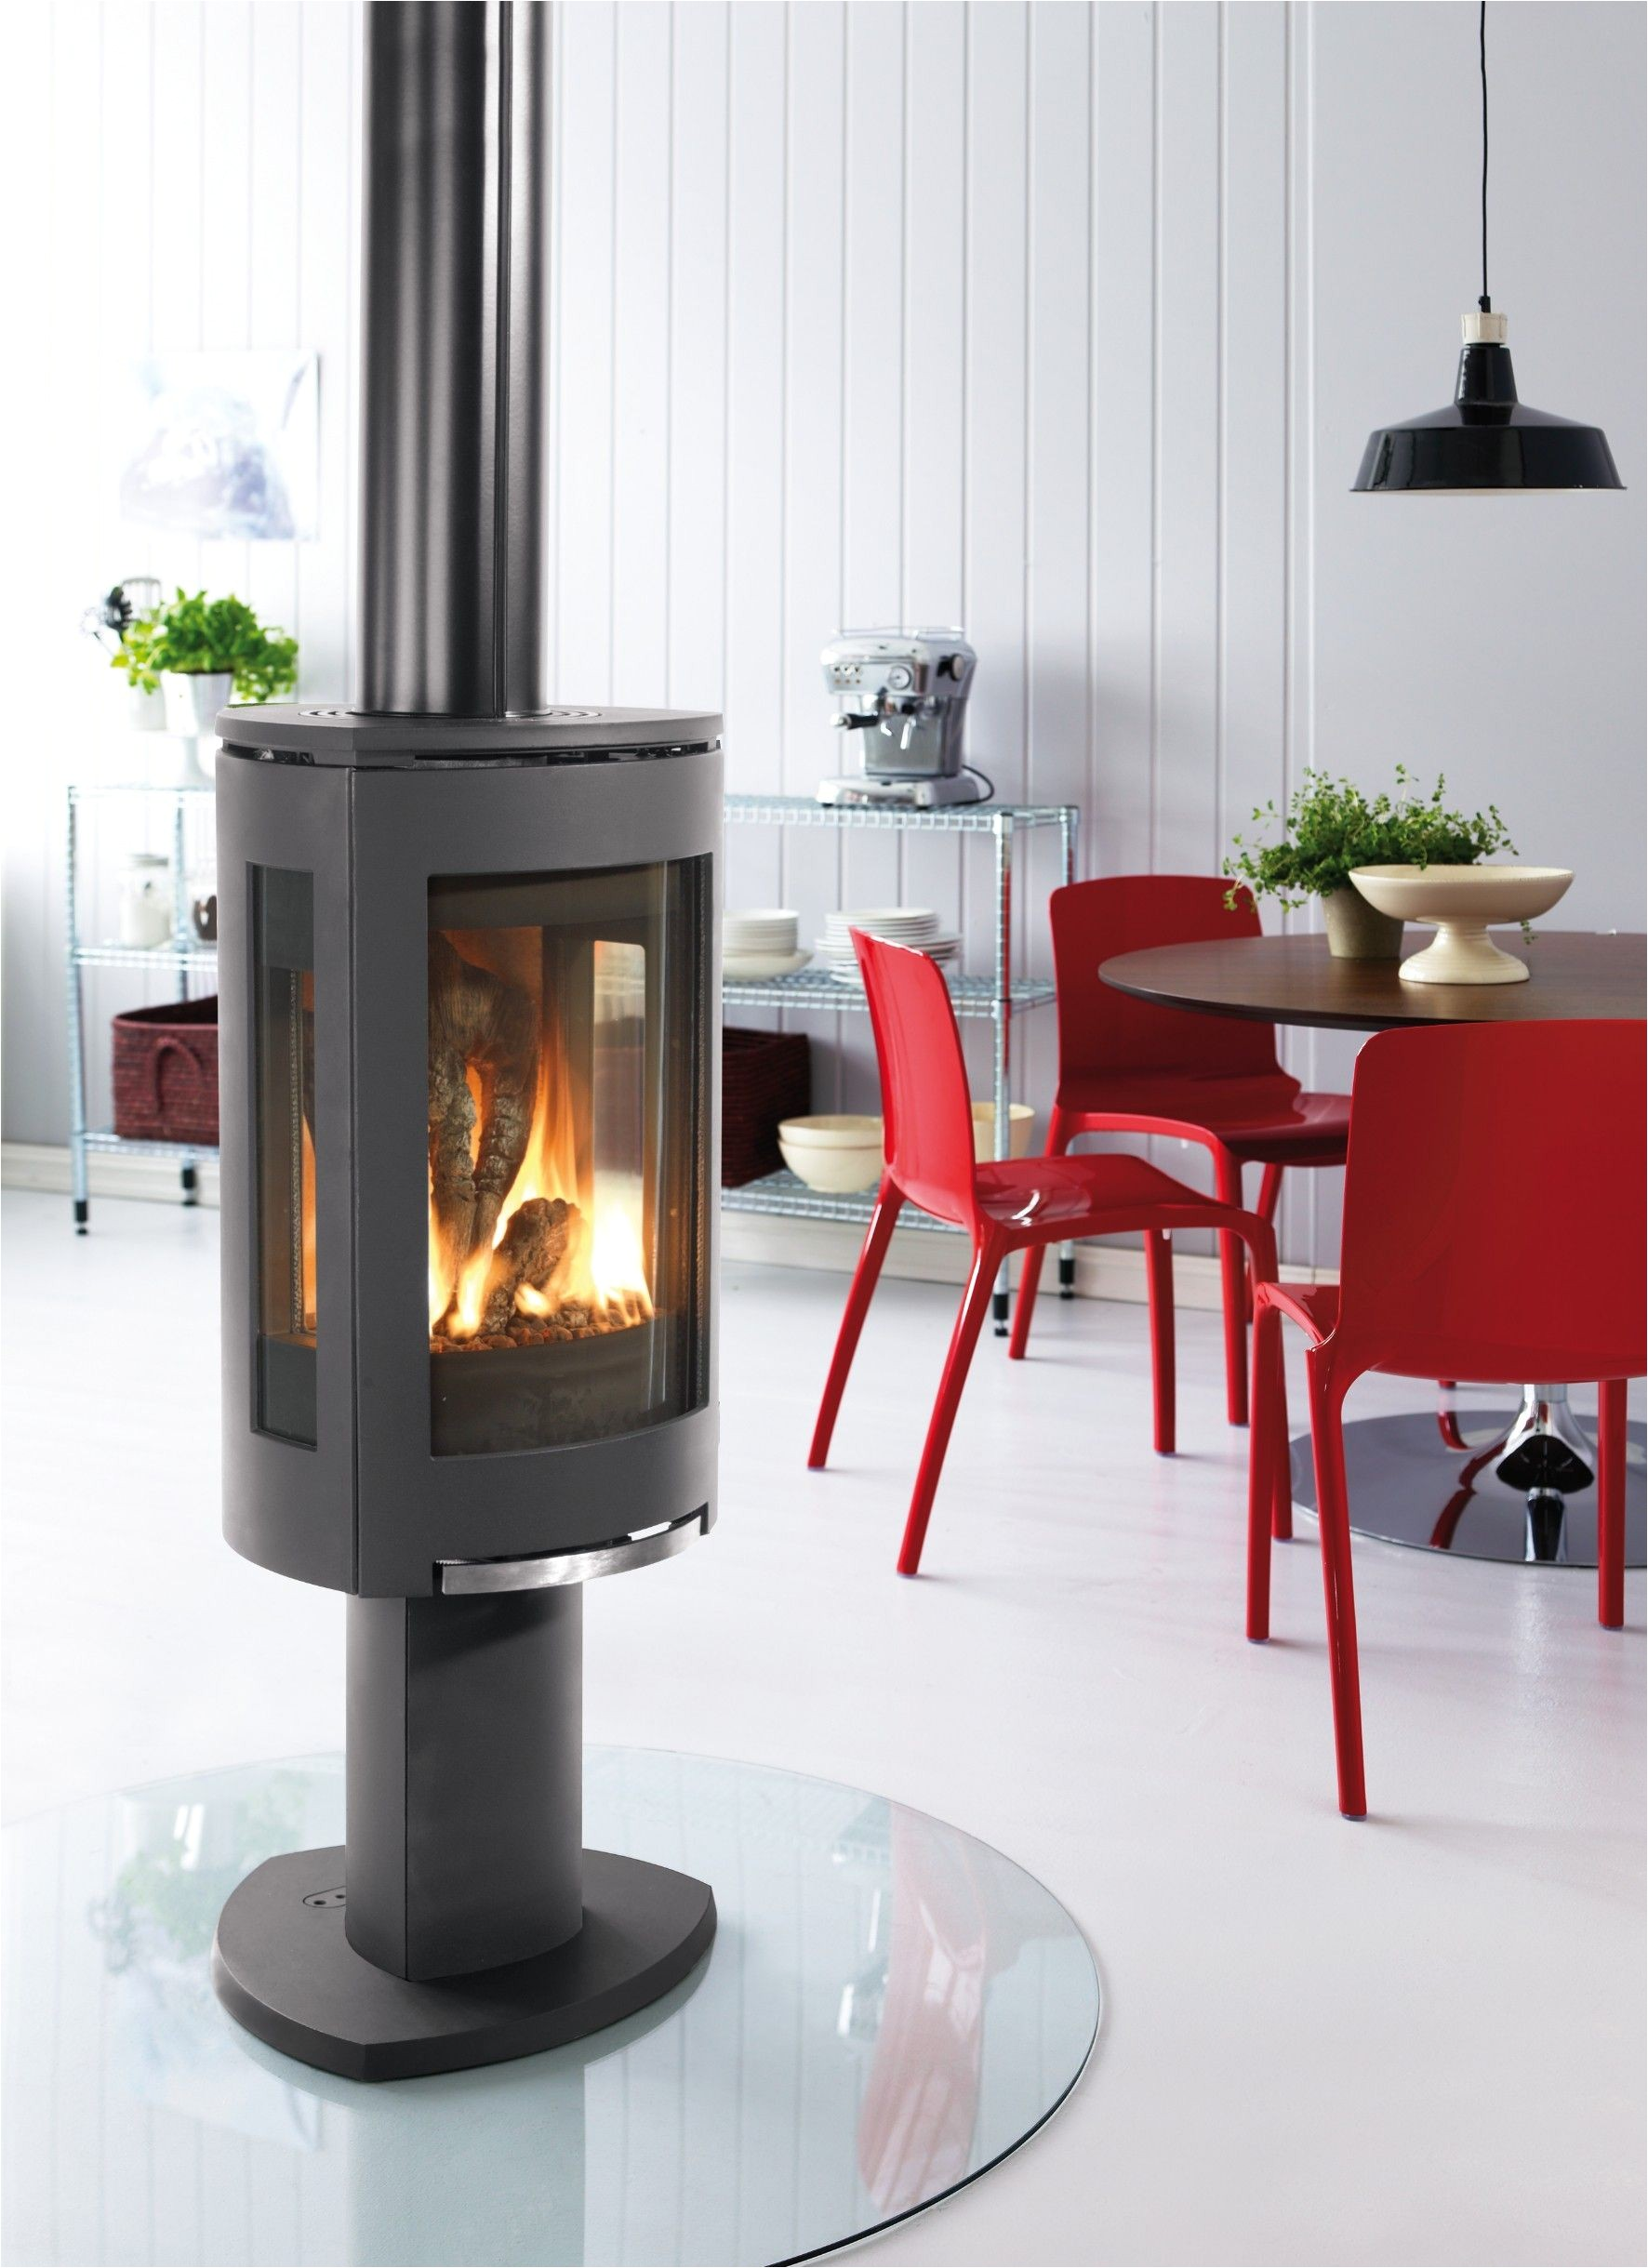 jotul gf 370 dv gas stove the jotul gf 370 dv features contemporary design and an elegant view on three sides allowing enjoyment from any angle